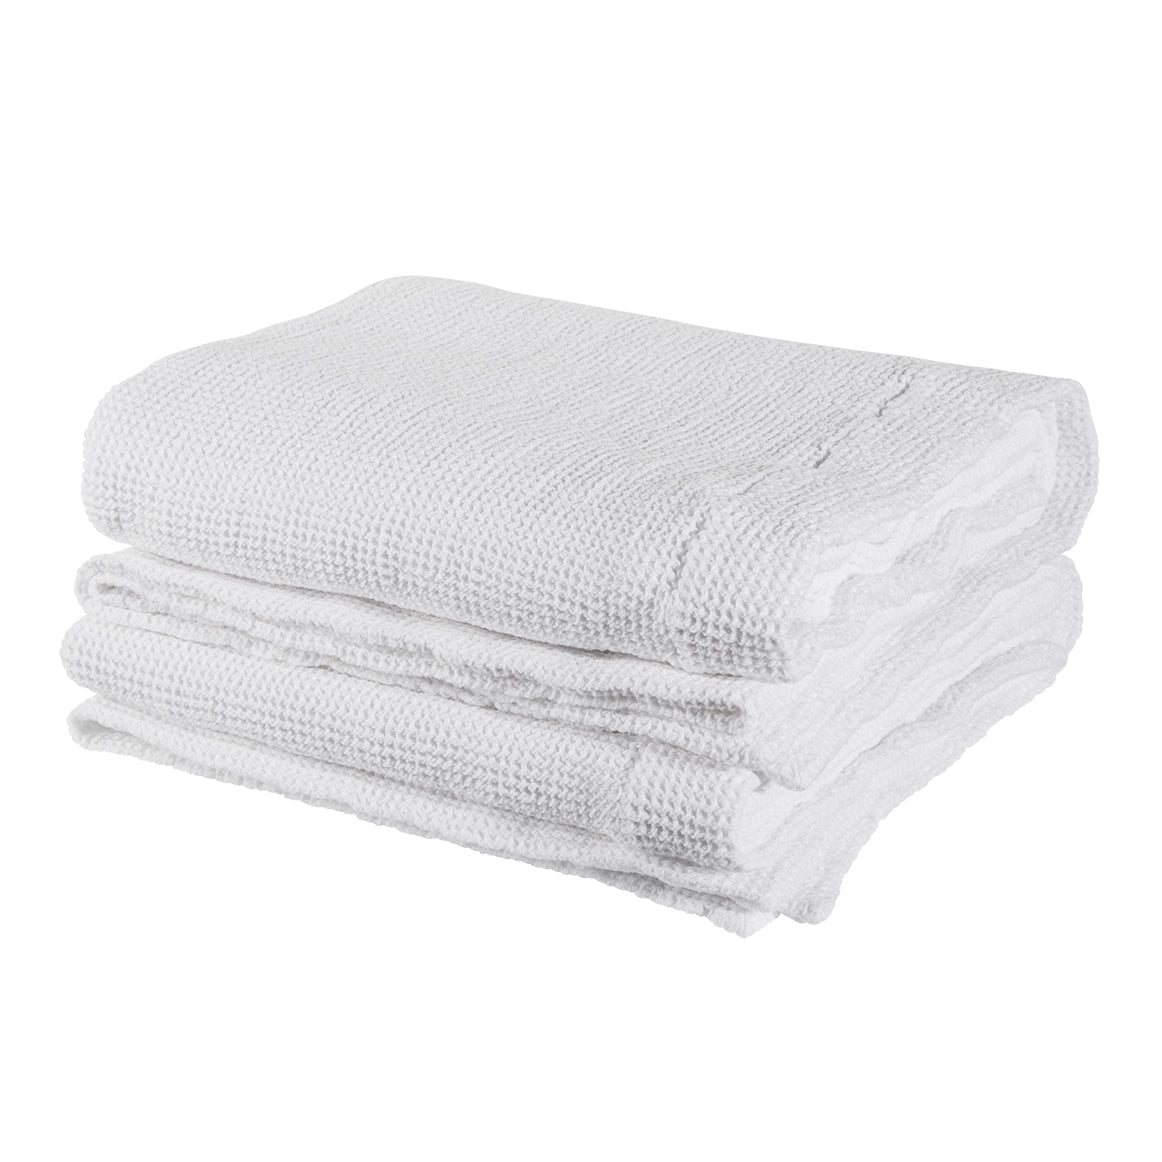 Waffle XL Bath Towel- Optic White